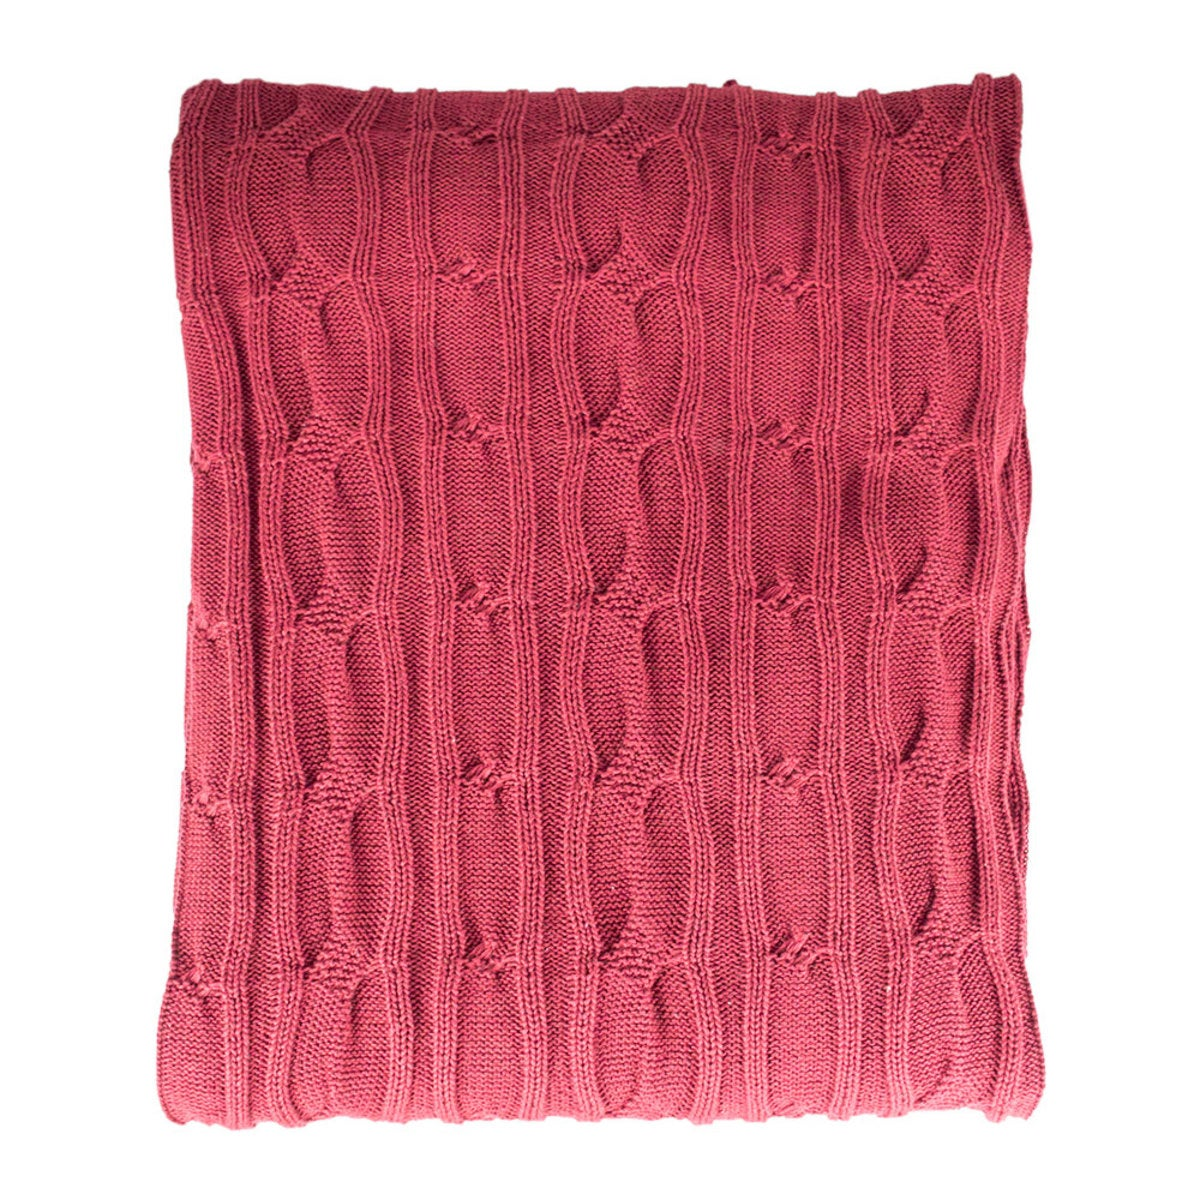 Organic Cotton Cable Knit Throw - Dark Red